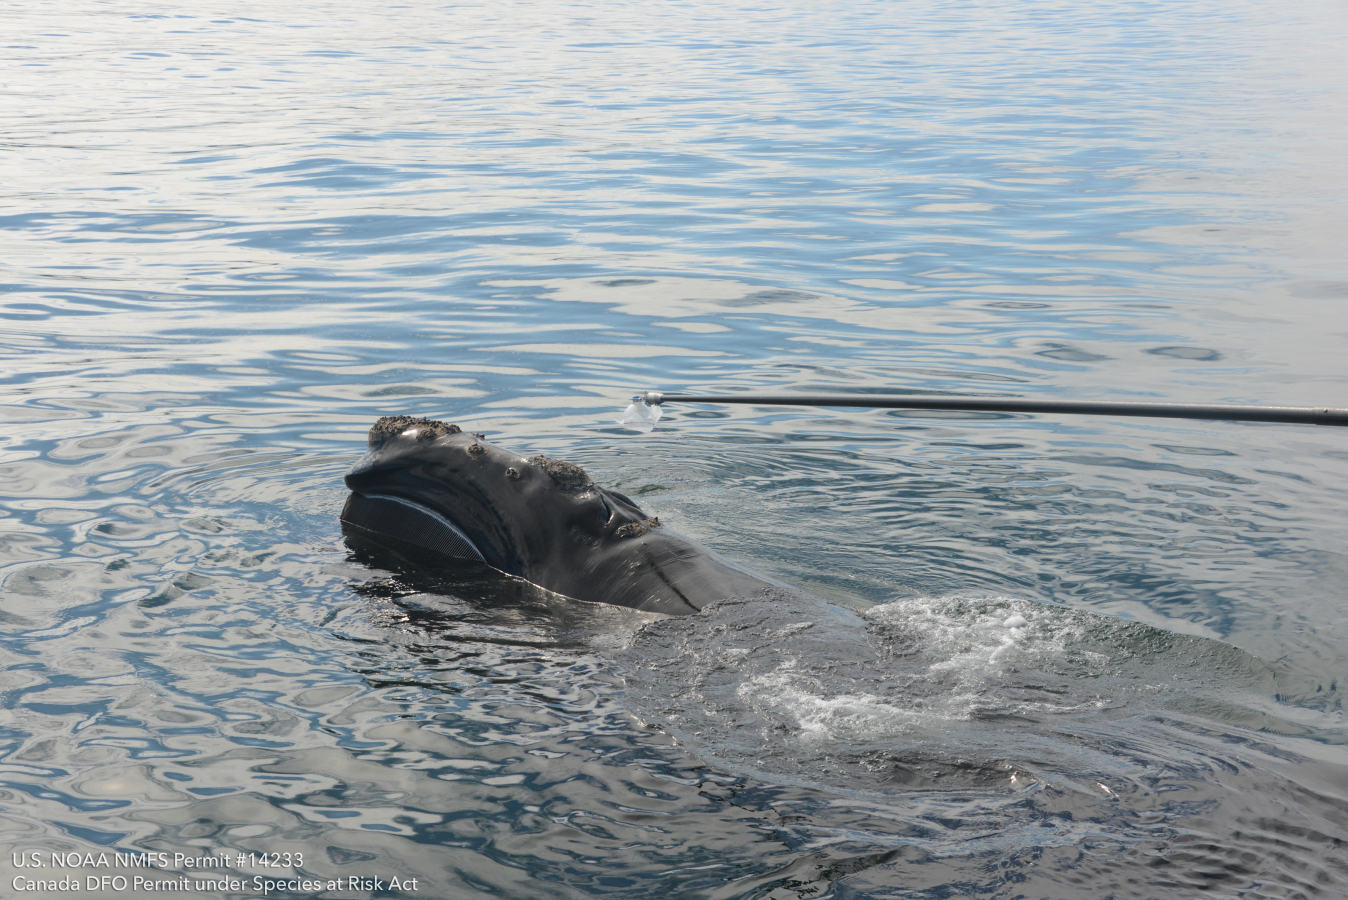 Collecting blow from a right whale.